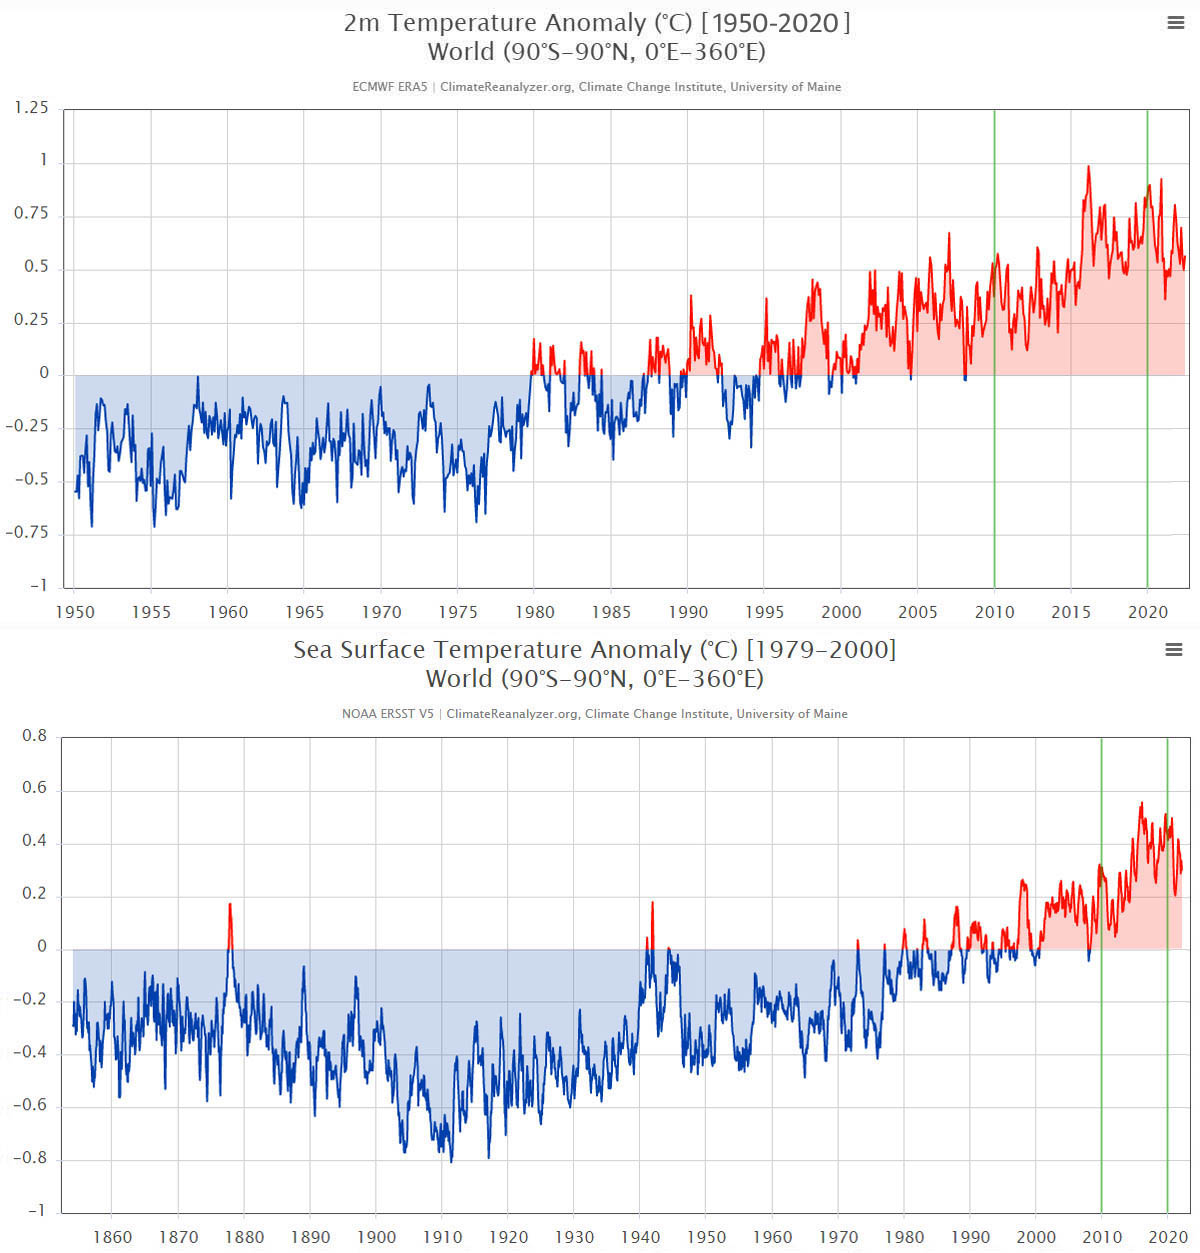 ClimateReanalyzer.org: Temperature Anomaly at 2m + Sea Surface Temperature Anomaly (°C)